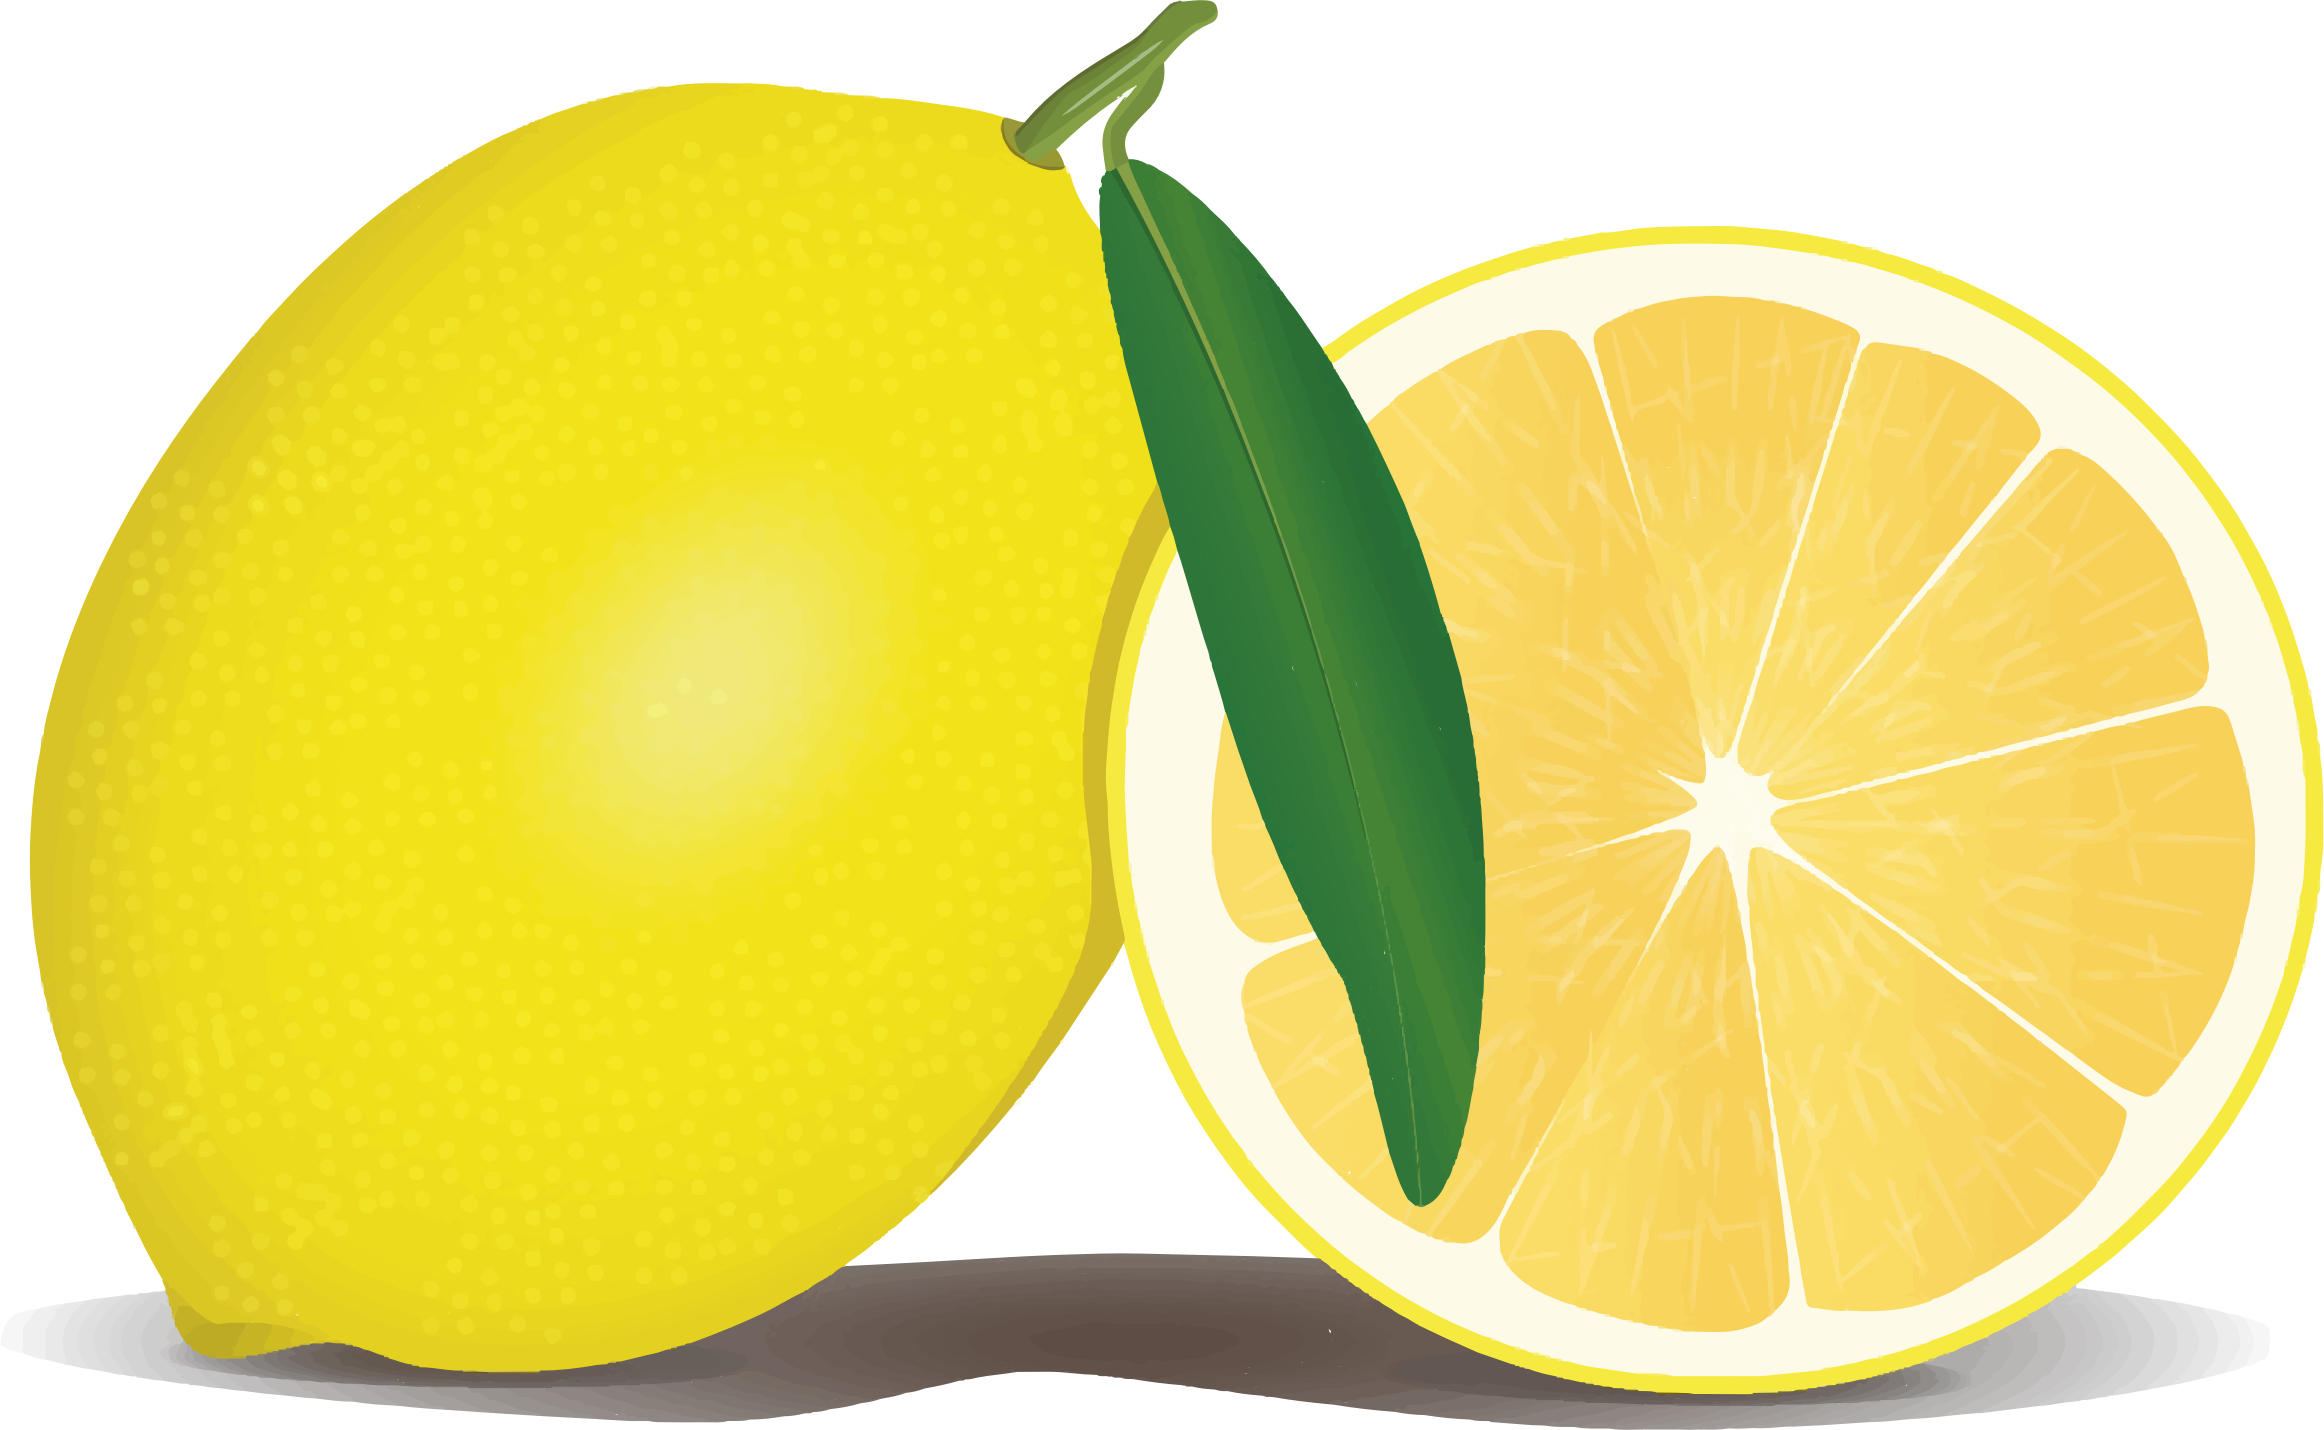 Lemon Png Transparent image #38643